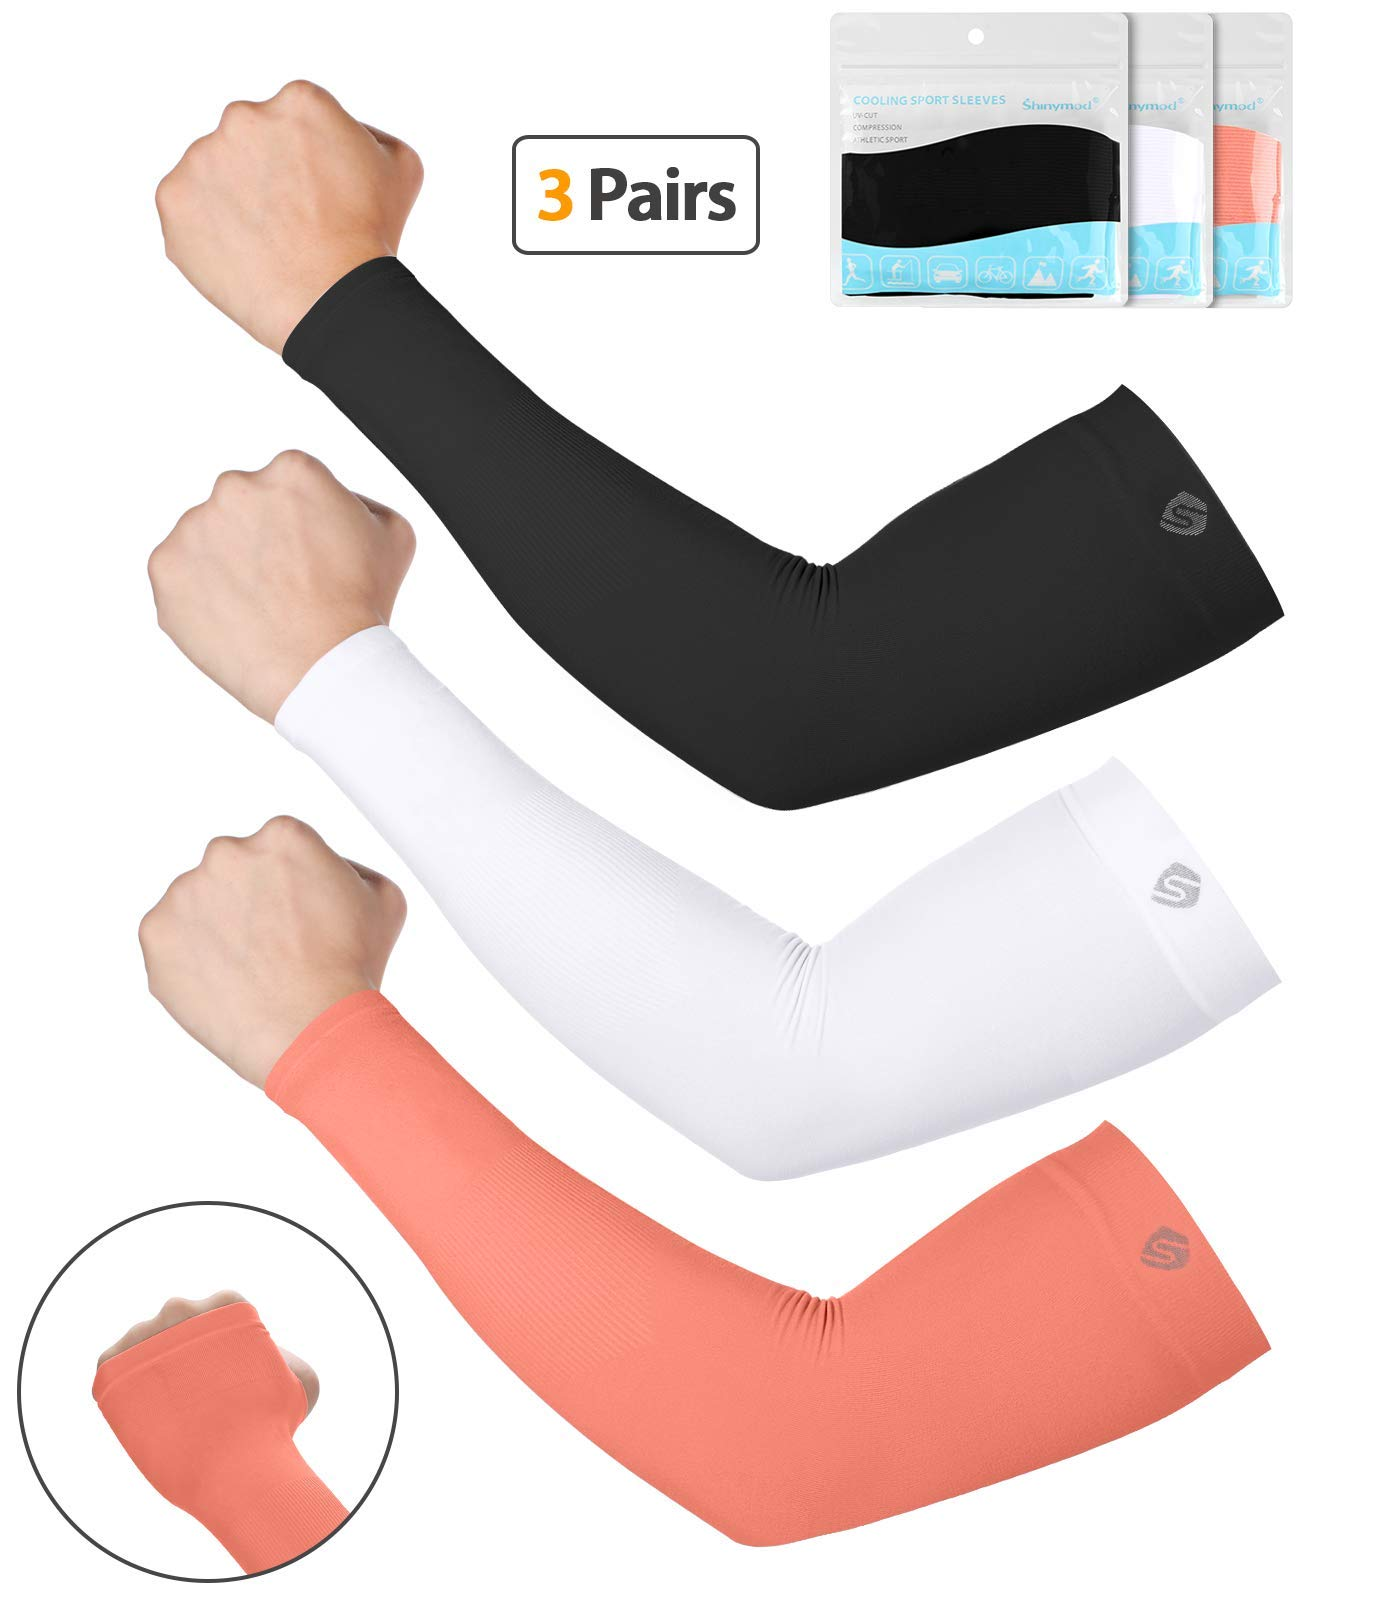 SHINYMOD UV Protection Cooling or Warmer Arm Sleeves for Men Women Kids Sunblock Protective Gloves Running Golf Cycling Driving Long Tattoo Cover Arm Warmer-Black White LivingCoral